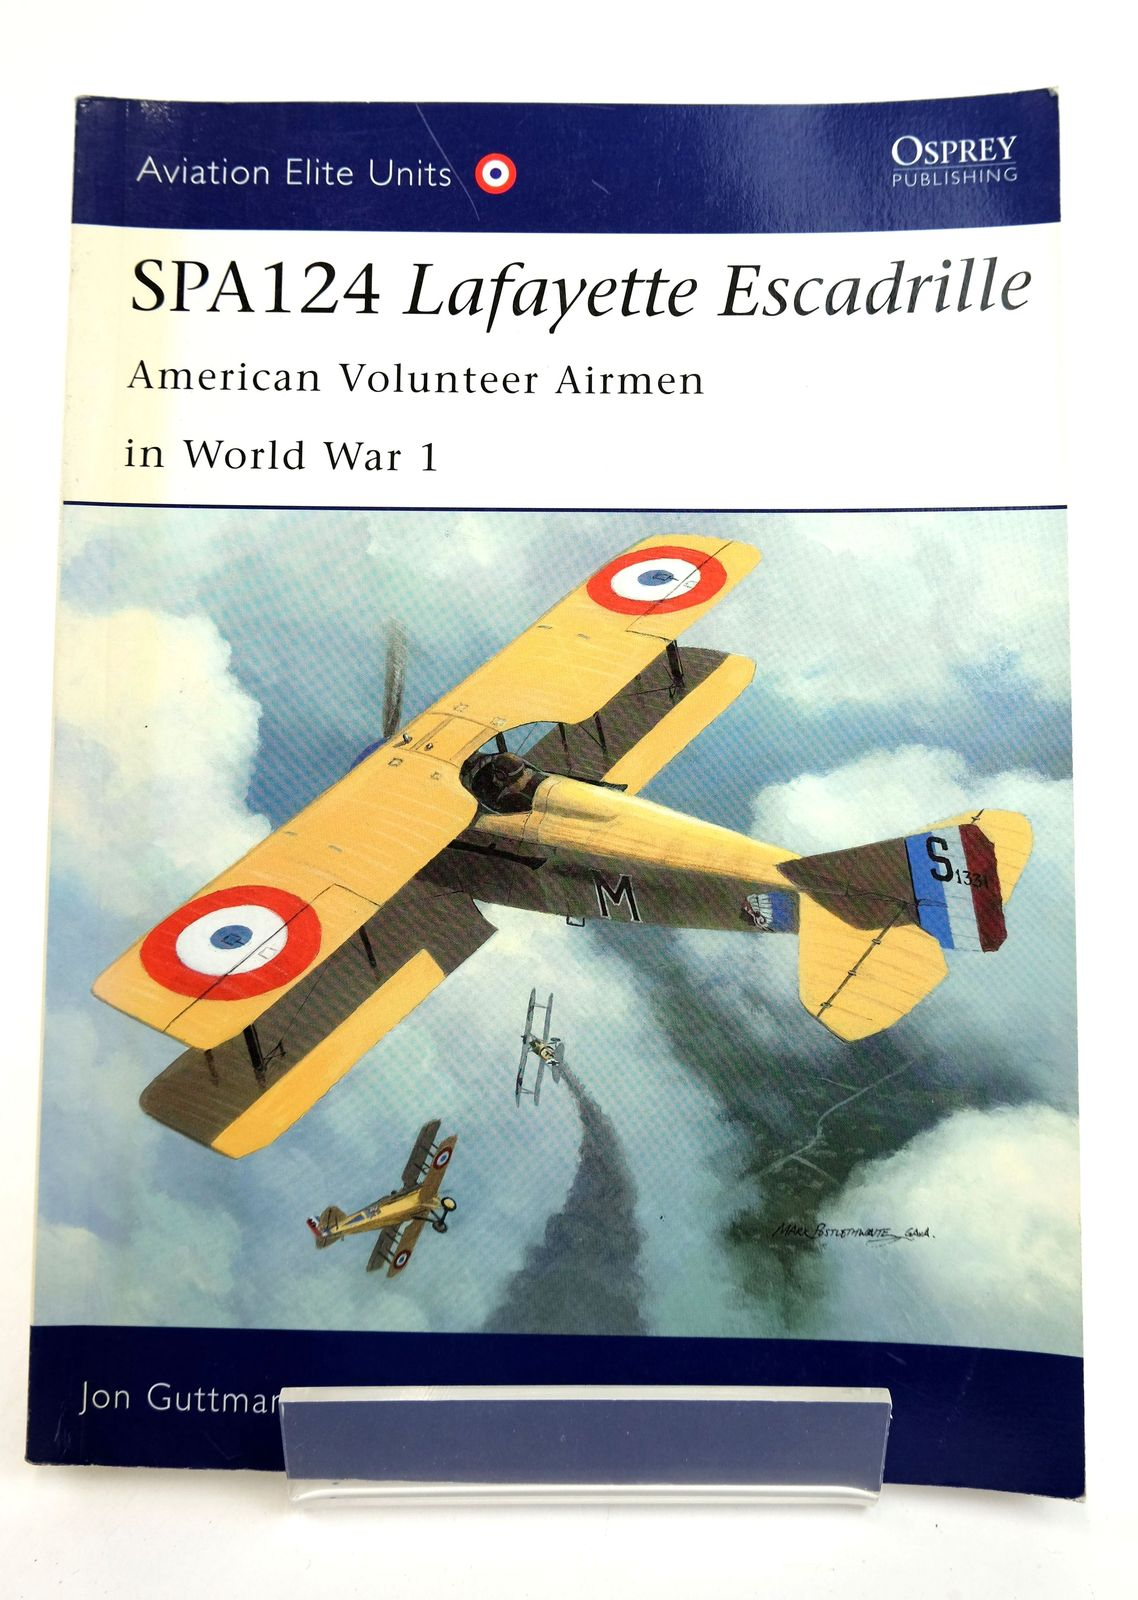 Photo of SPA124 LAFAYETTE ESCADRILLE: AMERICAN VOLUNTEER AIRMEN IN WORLD WAR 1 (AVIATION ELITE UNITS 17) written by Guttman, Jon published by Osprey Publishing (STOCK CODE: 1818970)  for sale by Stella & Rose's Books